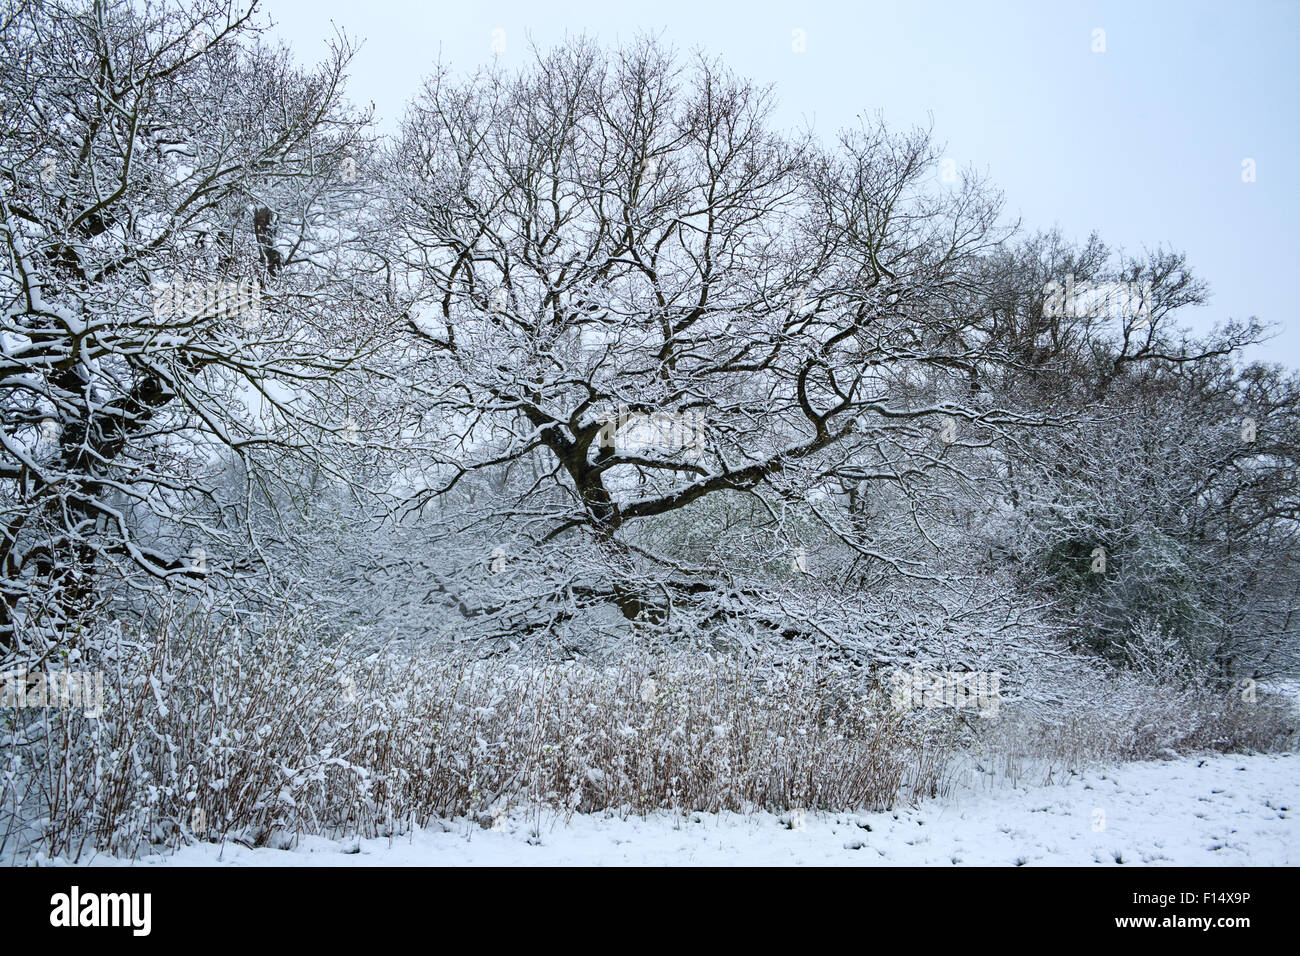 Snow-covered trees, hedges and grass at Manor Park in Caterham, Surrey, England following heavy snowfall Stock Photo